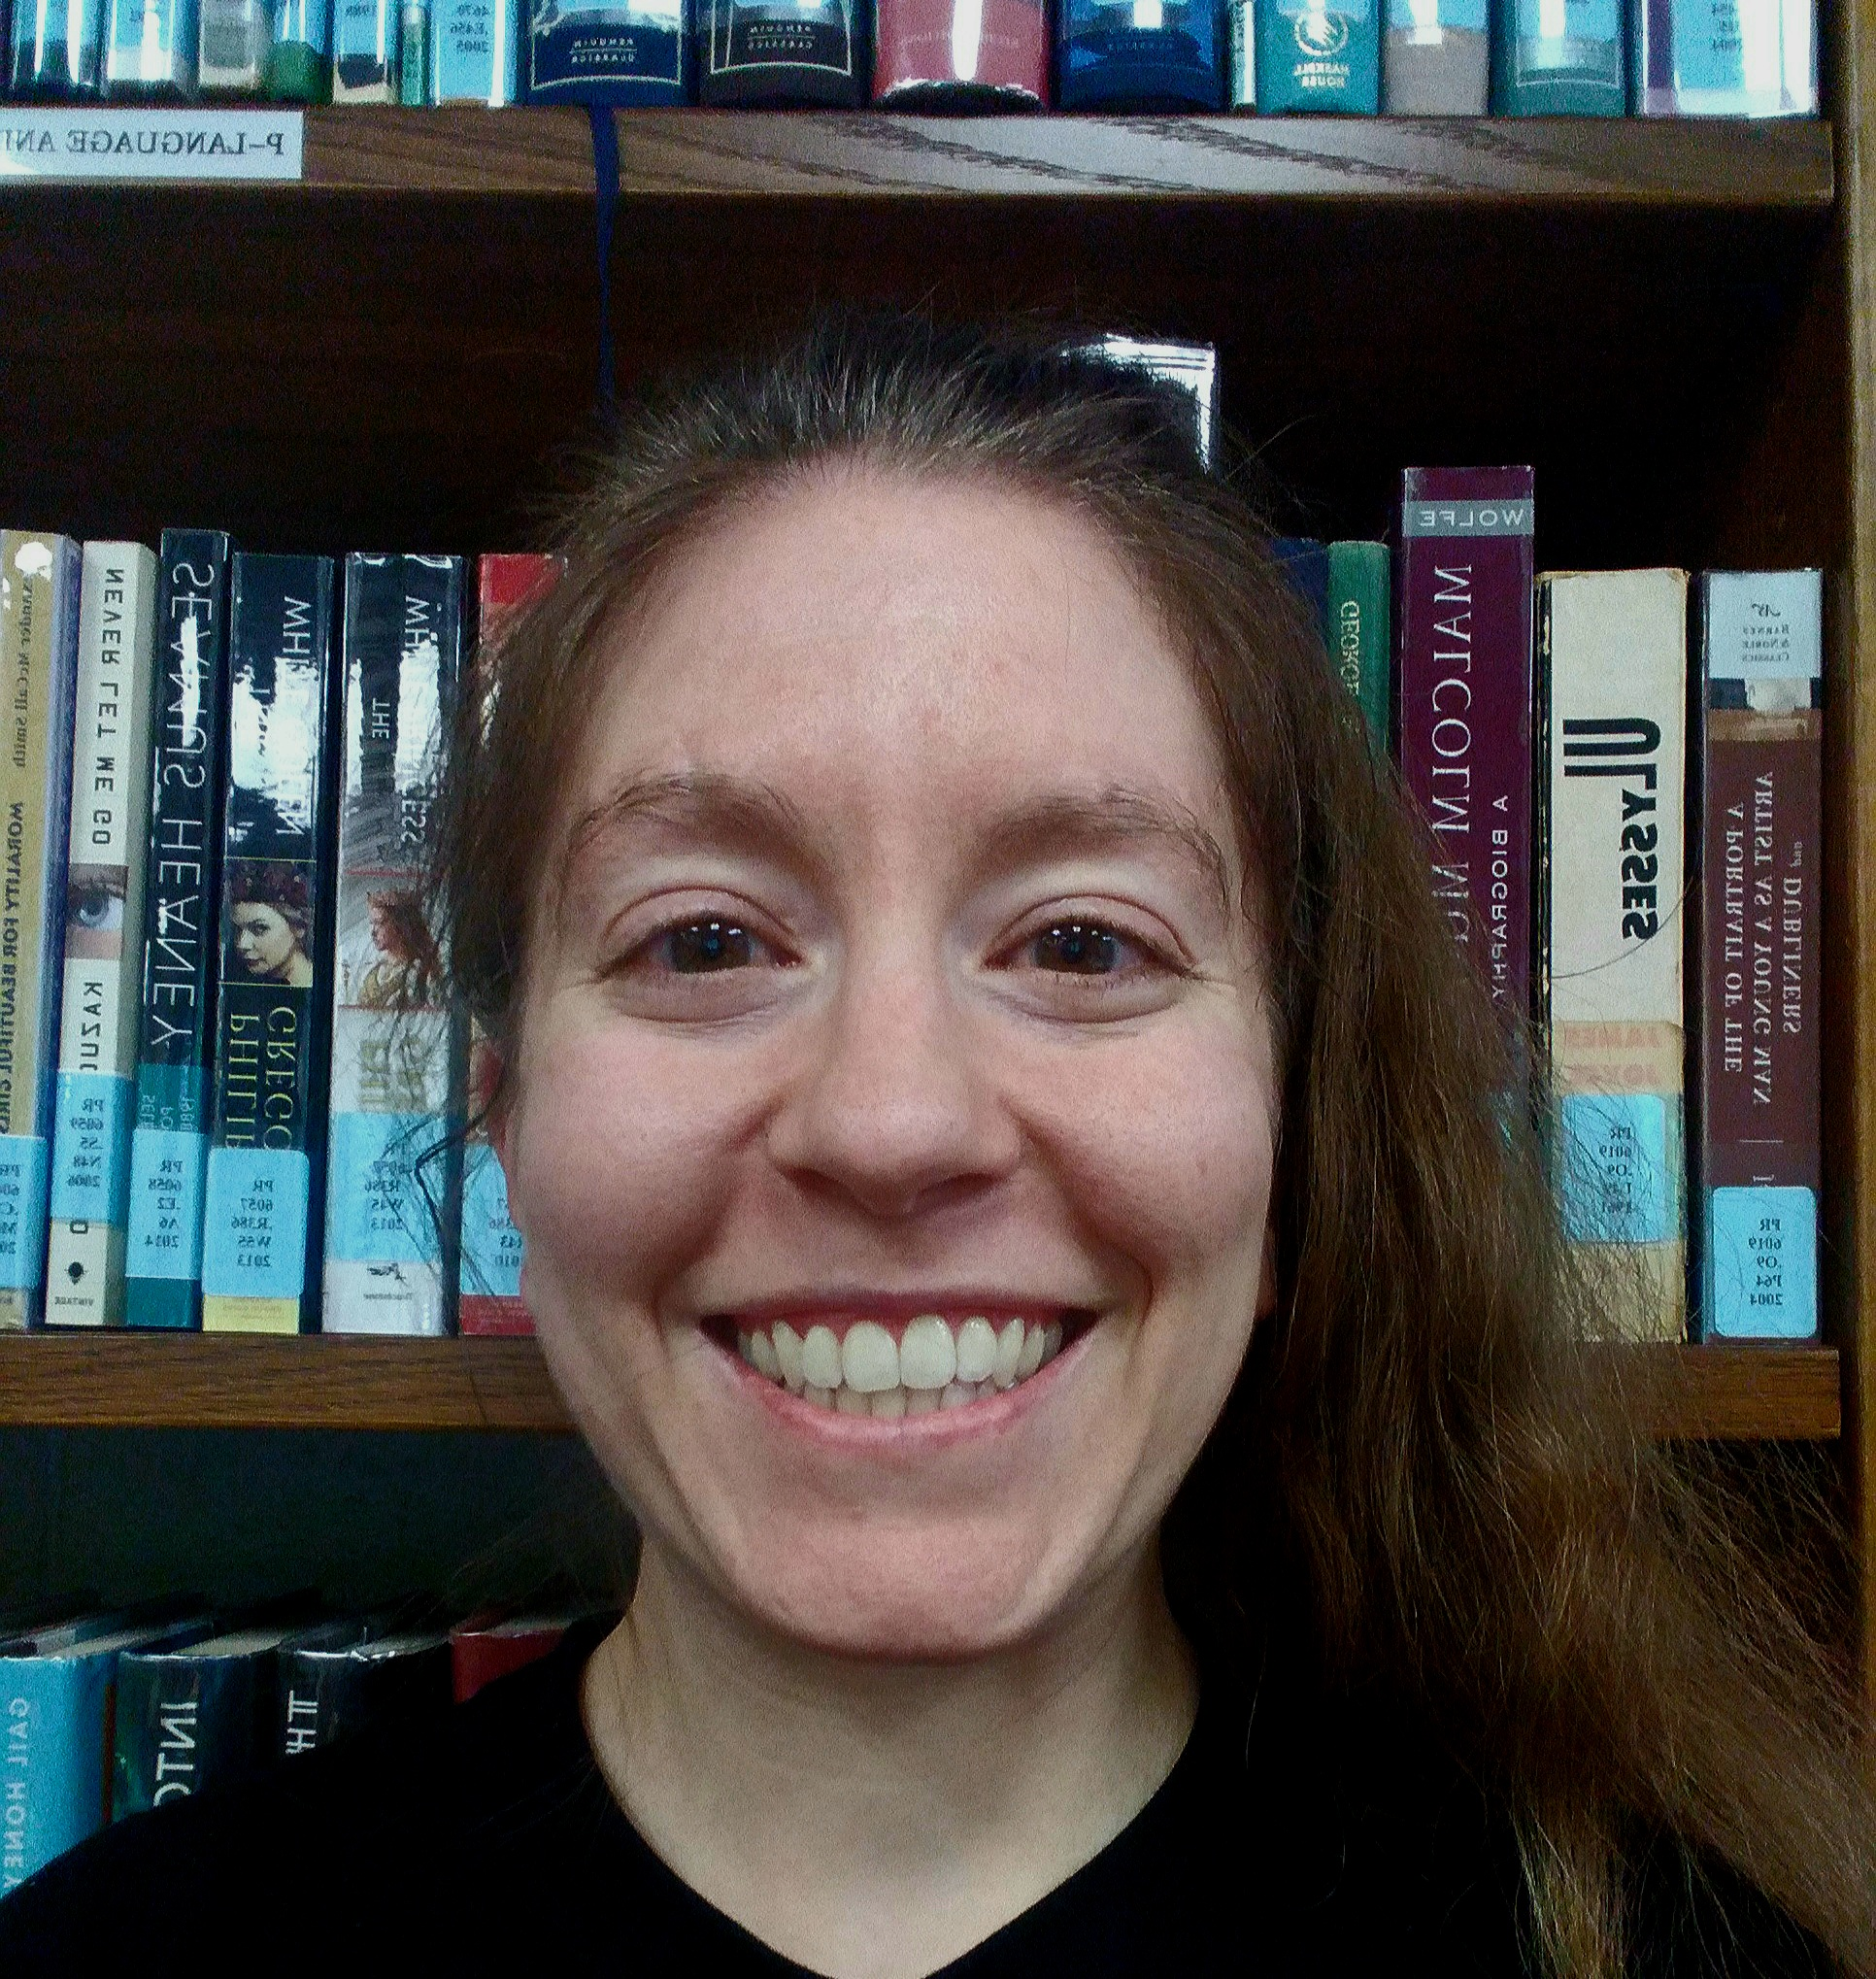 Picture of woman in front of bookshelves